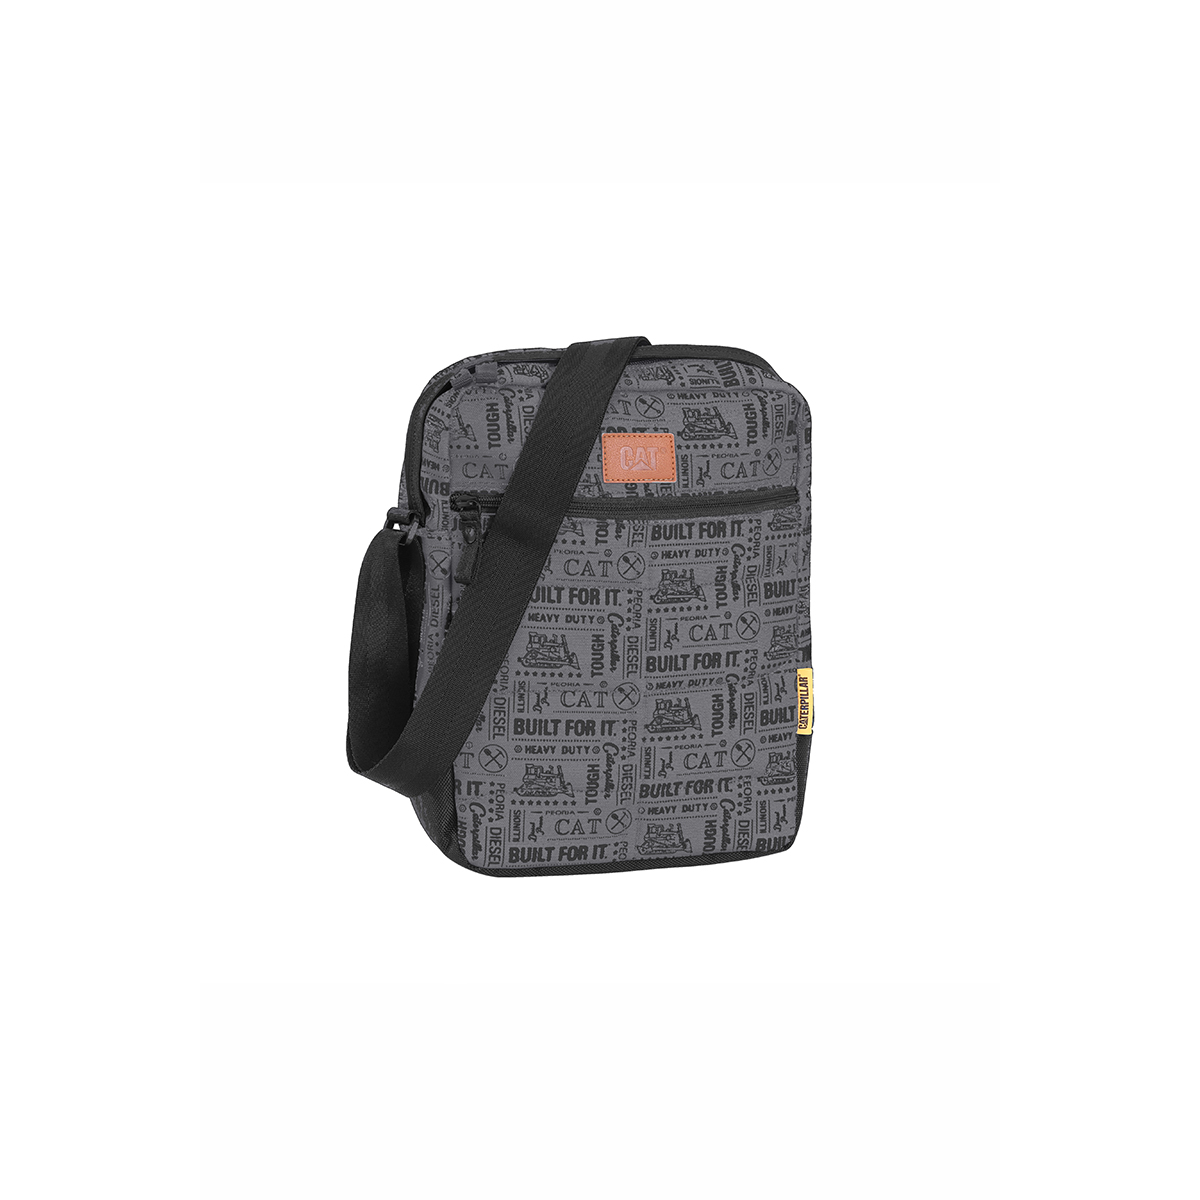 Jual Caterpillar Ryan Tas Selempang Pria - BFI Black Grey Caterpillar Bags    Luggage 173664ac79